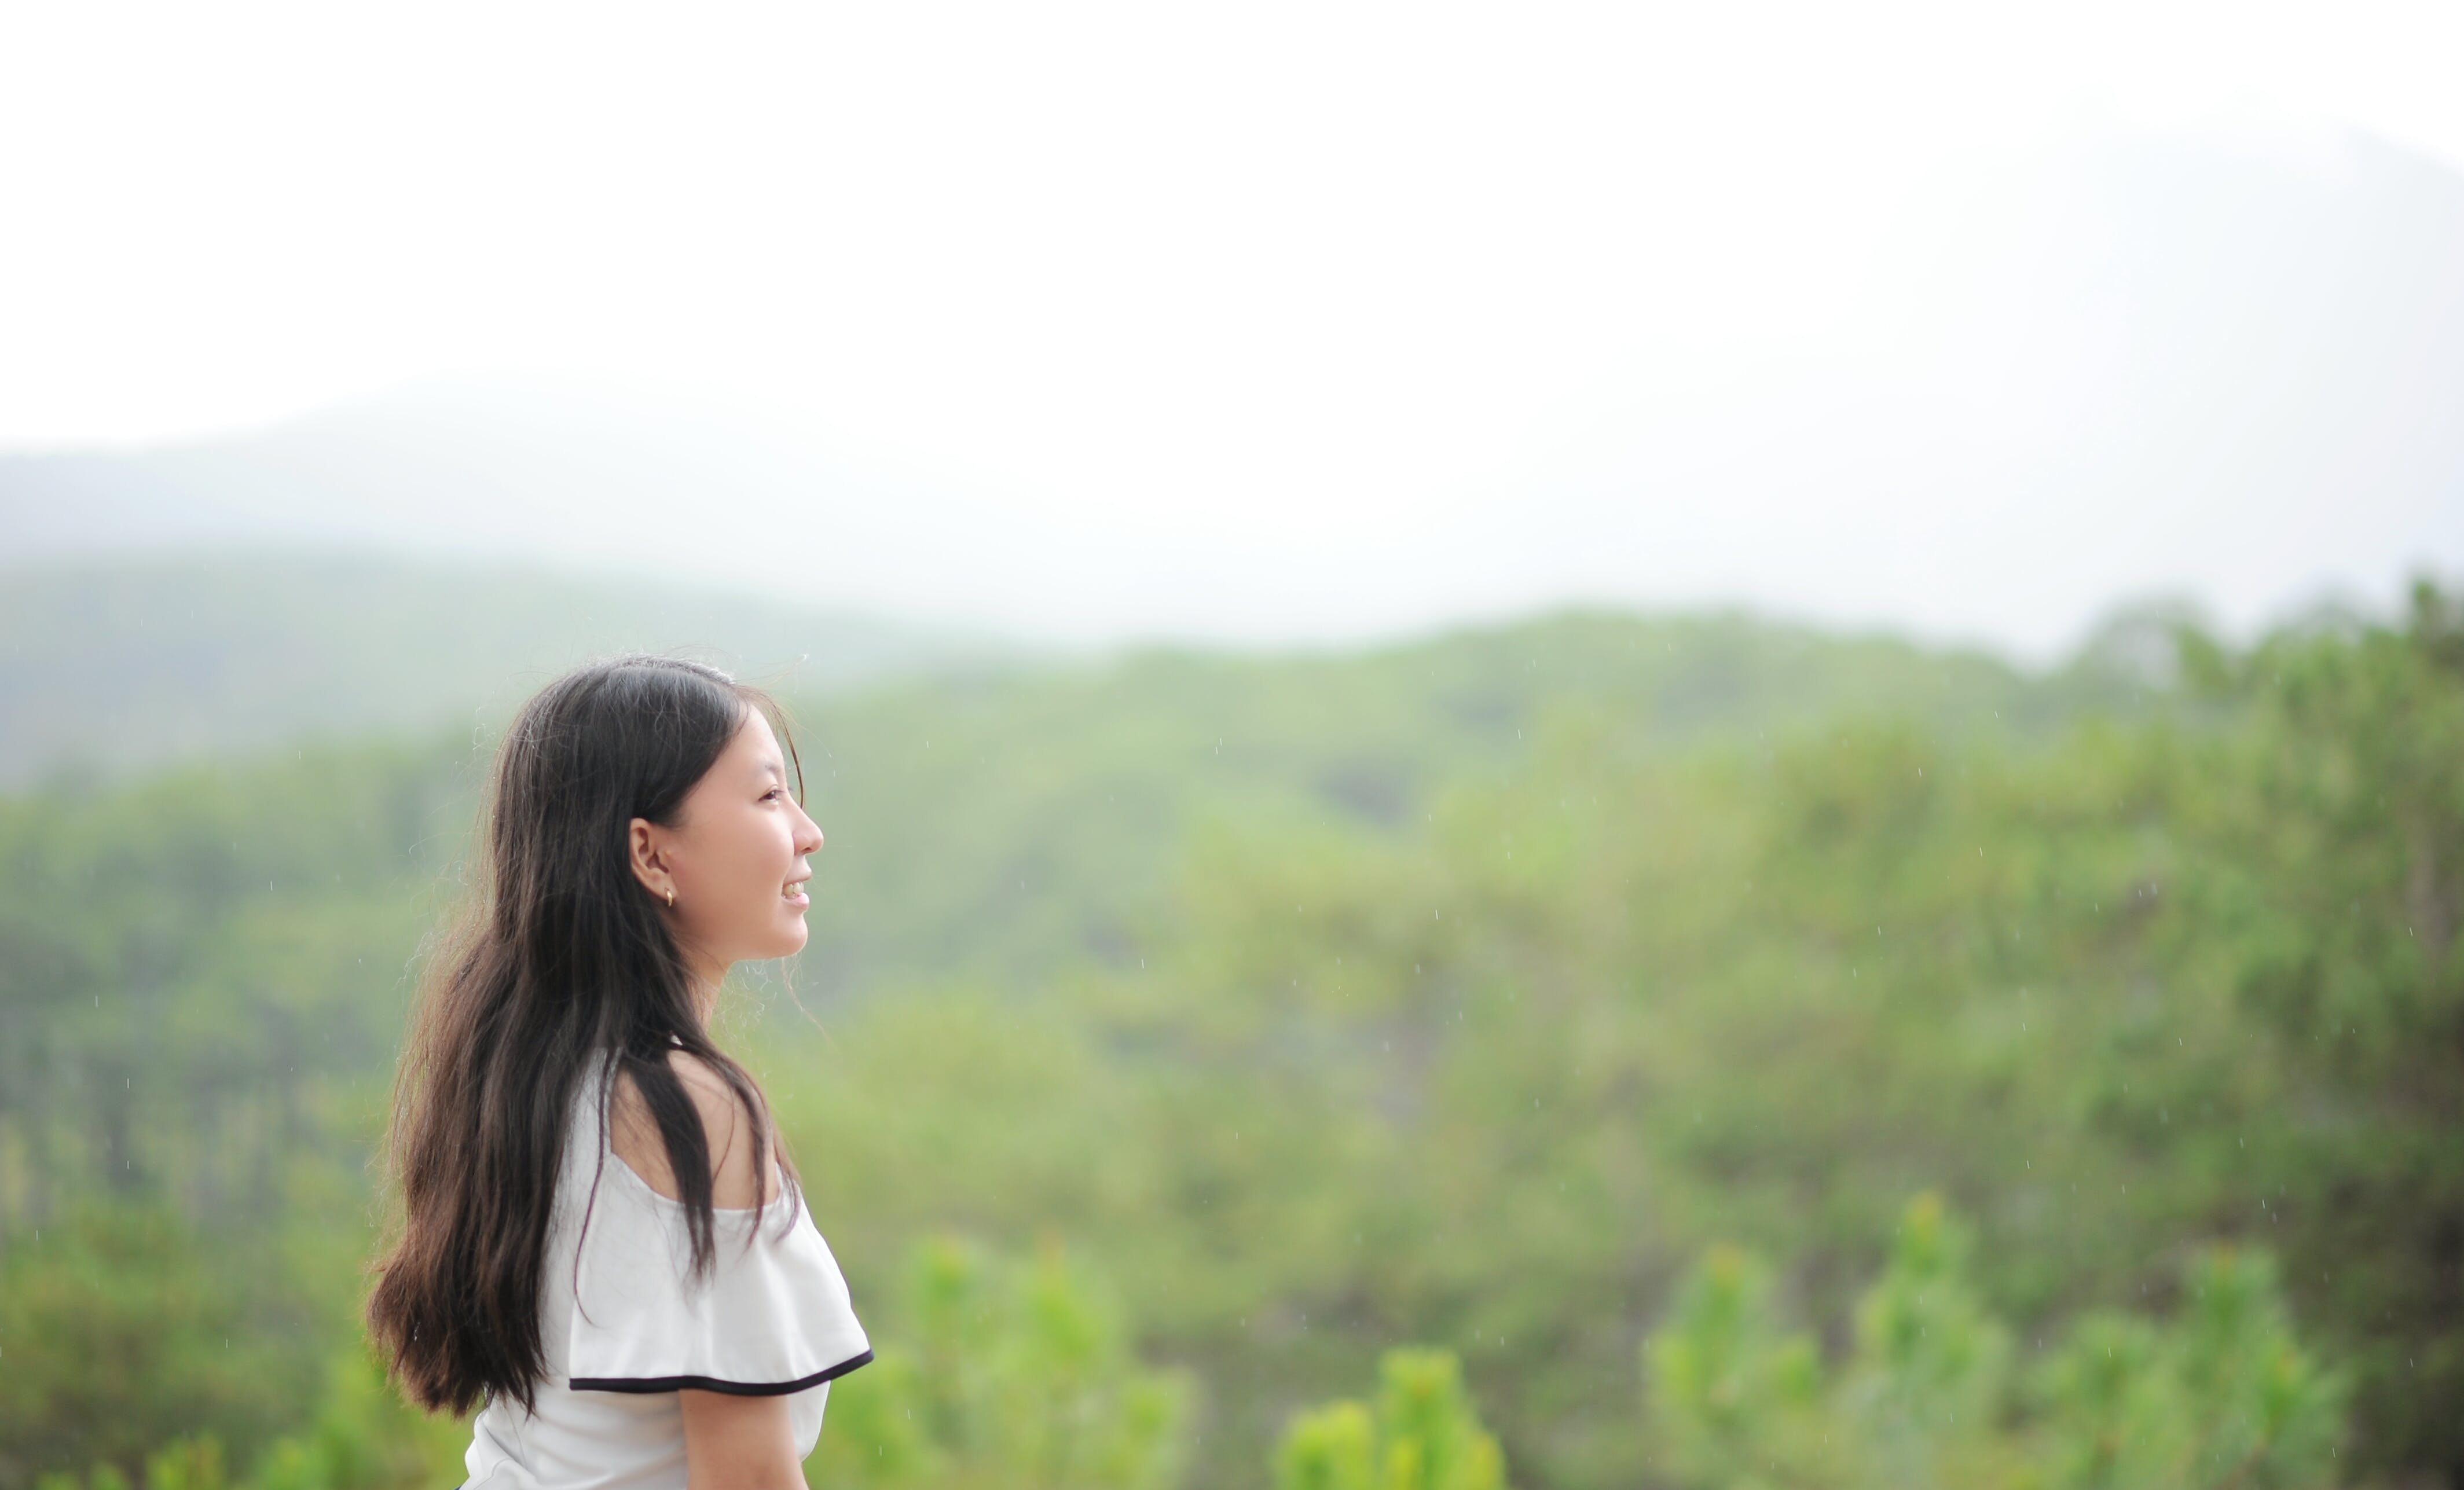 Photo of Woman Wearing White Top